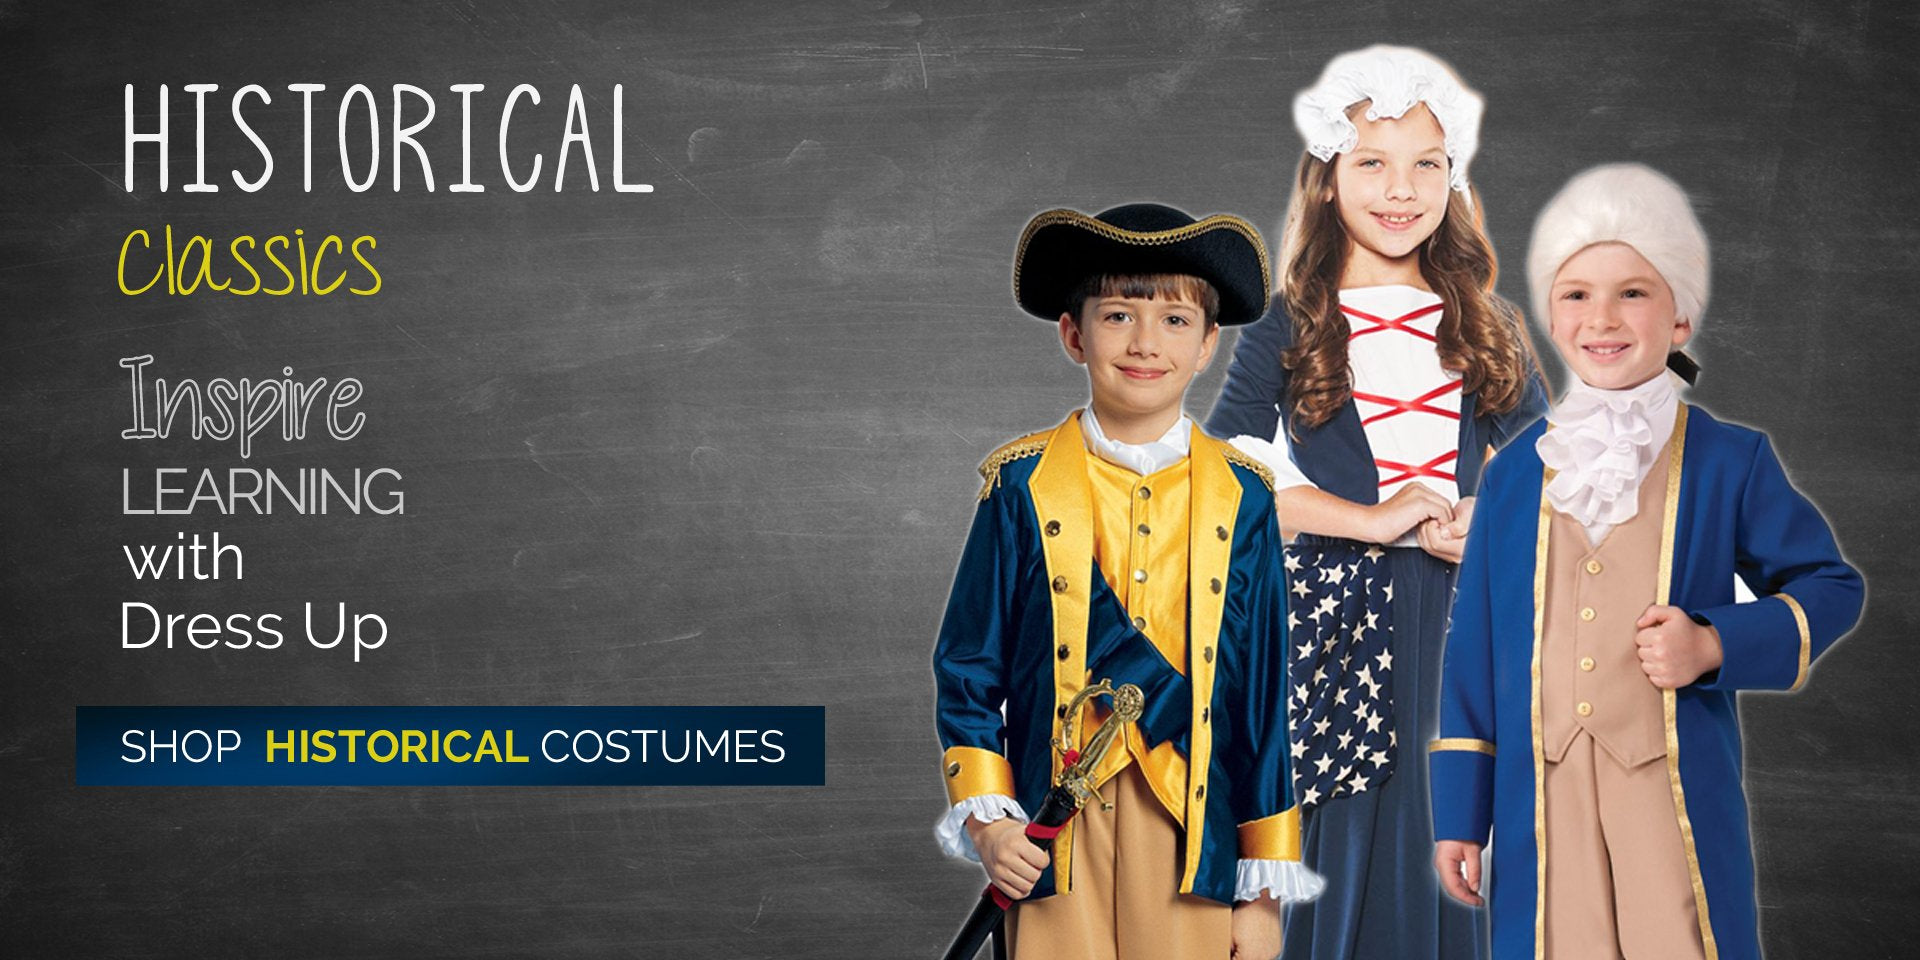 Shop Historical Classic Costumes at Costume Zoo